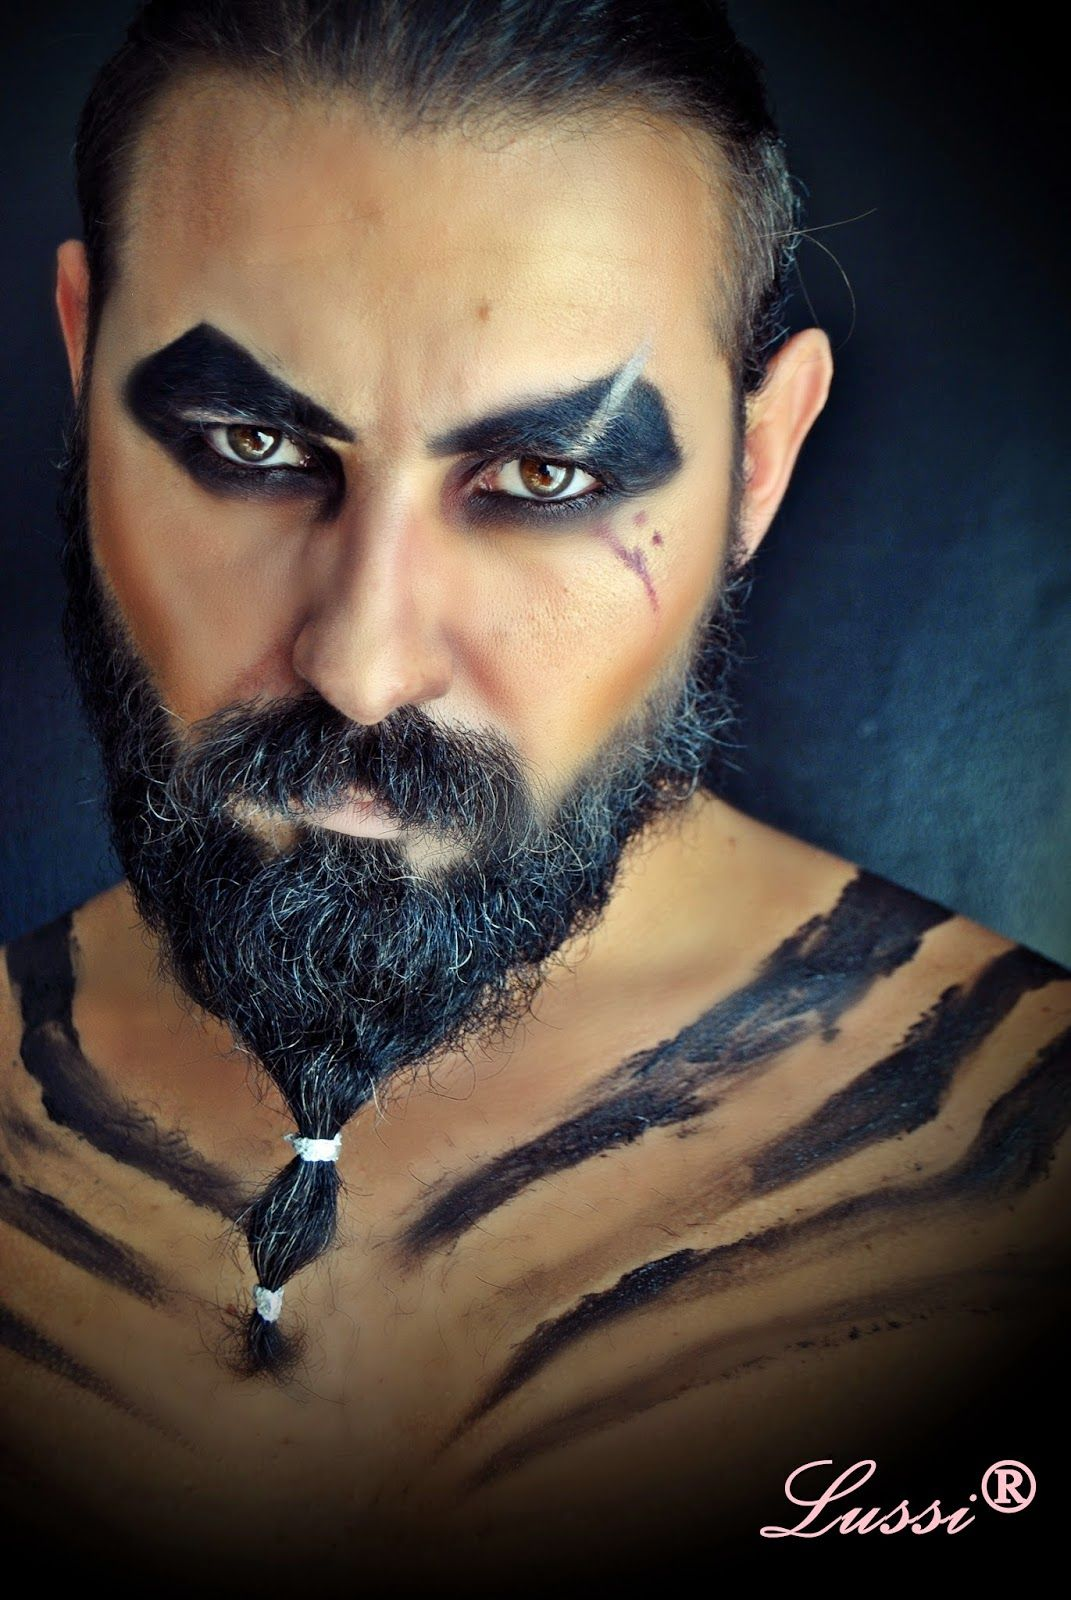 Halloween Makeup Looks For Guys.Halloween Make Up Ideas For Man Khal Drogo Halloween In 2019